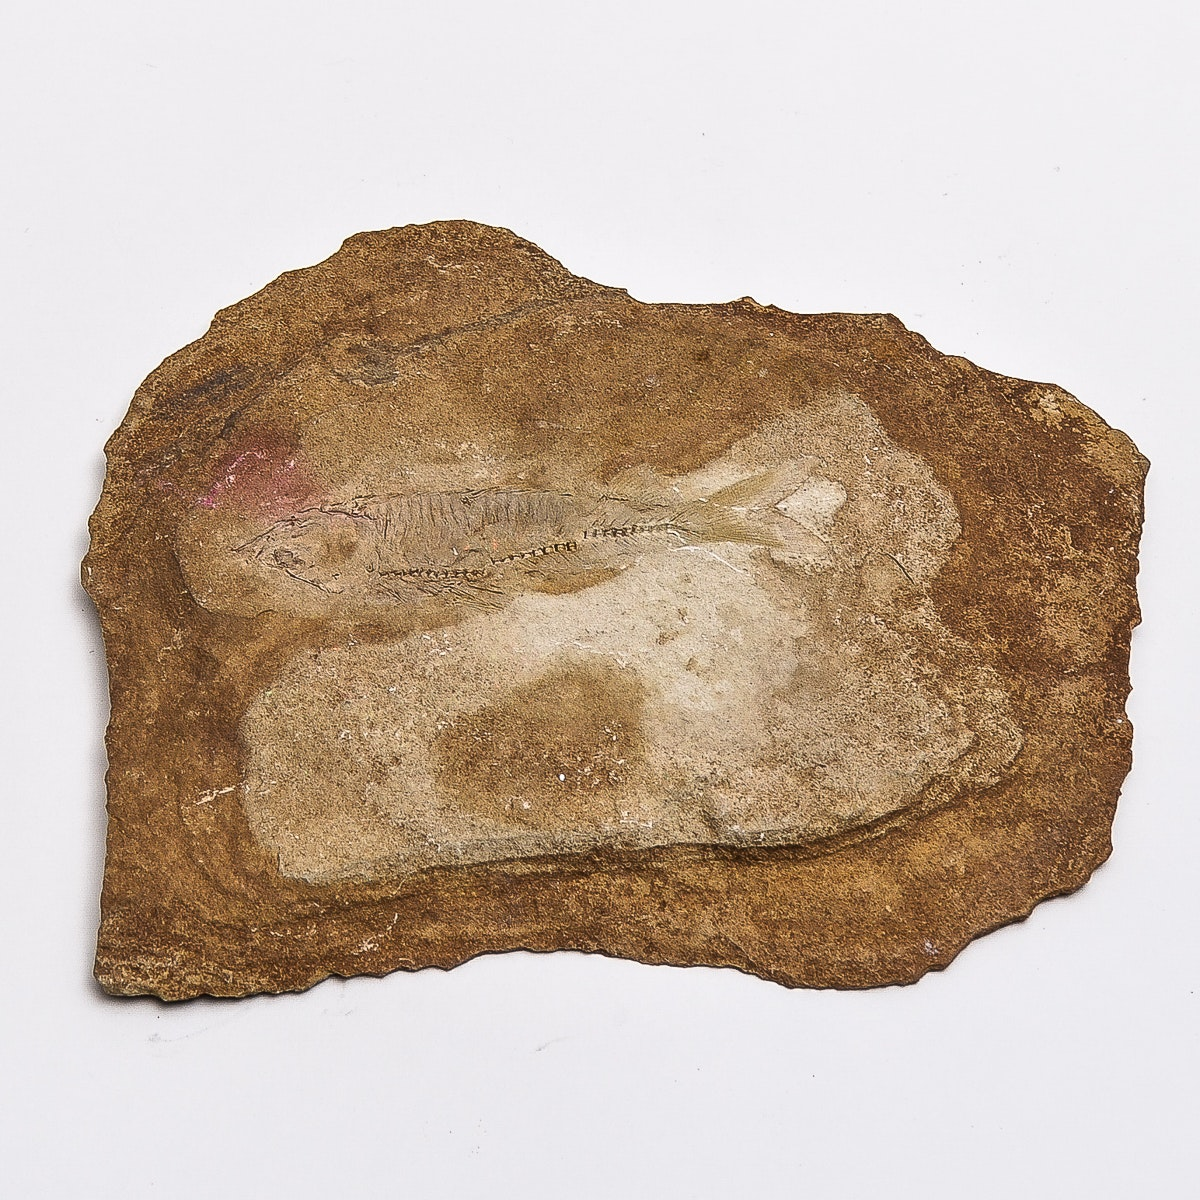 Fossilized Fish Specimen